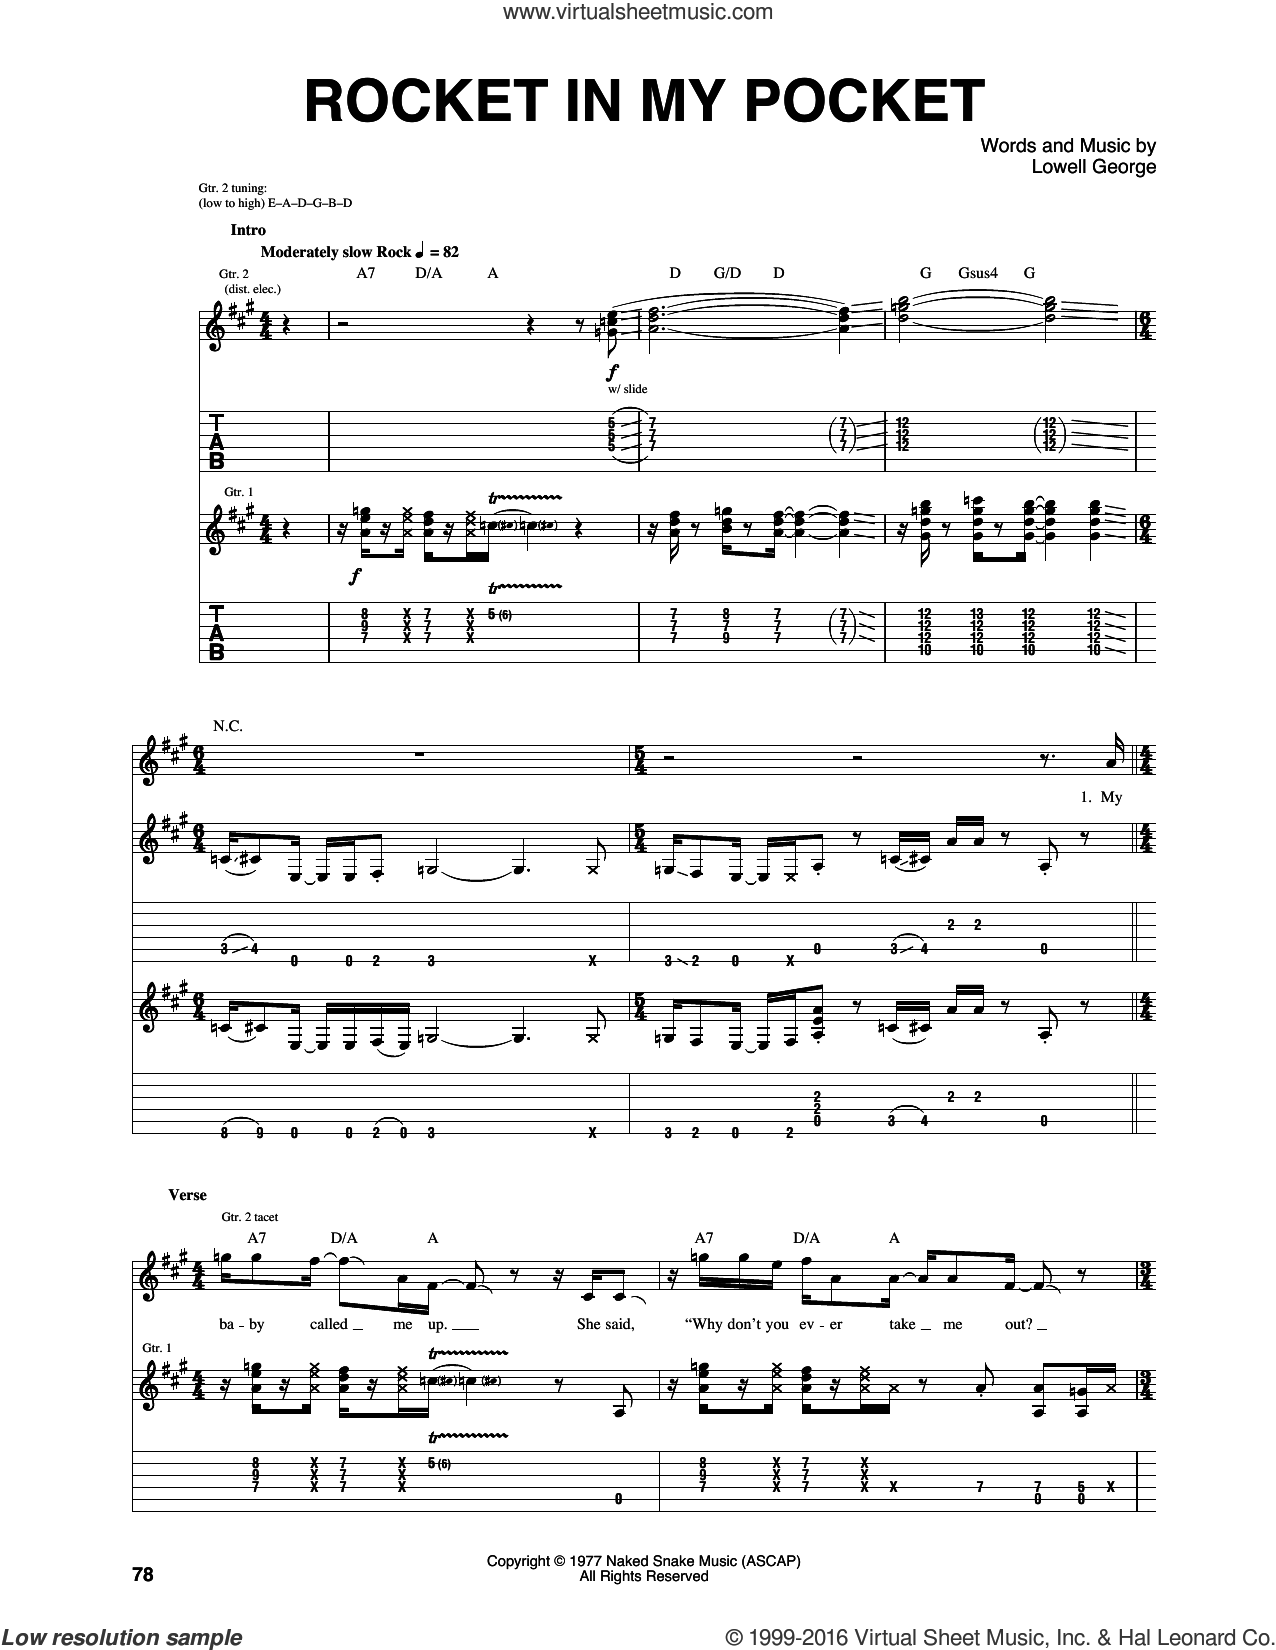 Rocket In My Pocket sheet music for guitar (tablature) by Little Feat and Lowell George, intermediate skill level